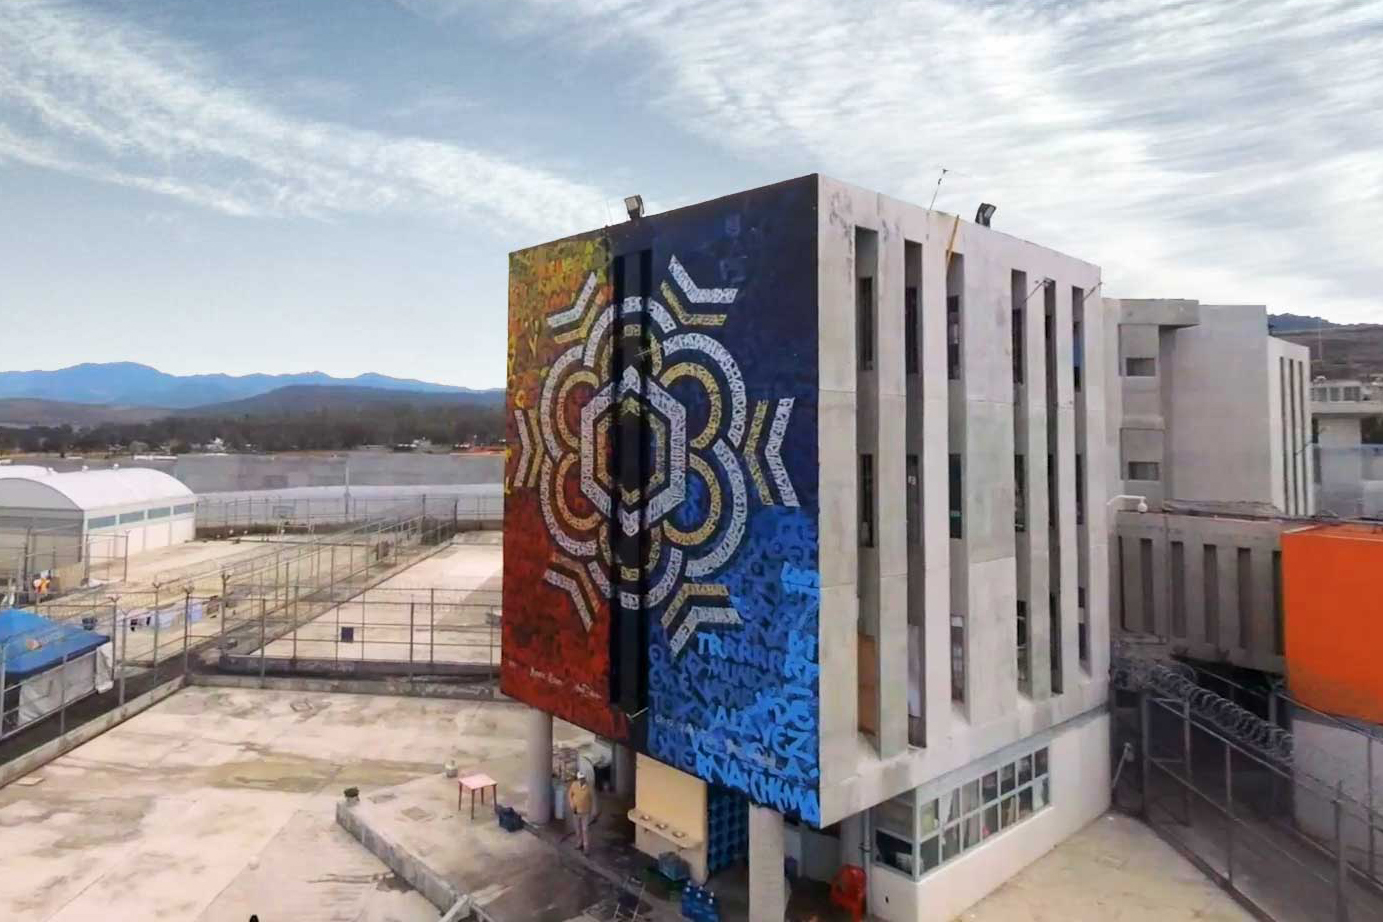 calligraffiti art mural by the mexican artist Said Dokins